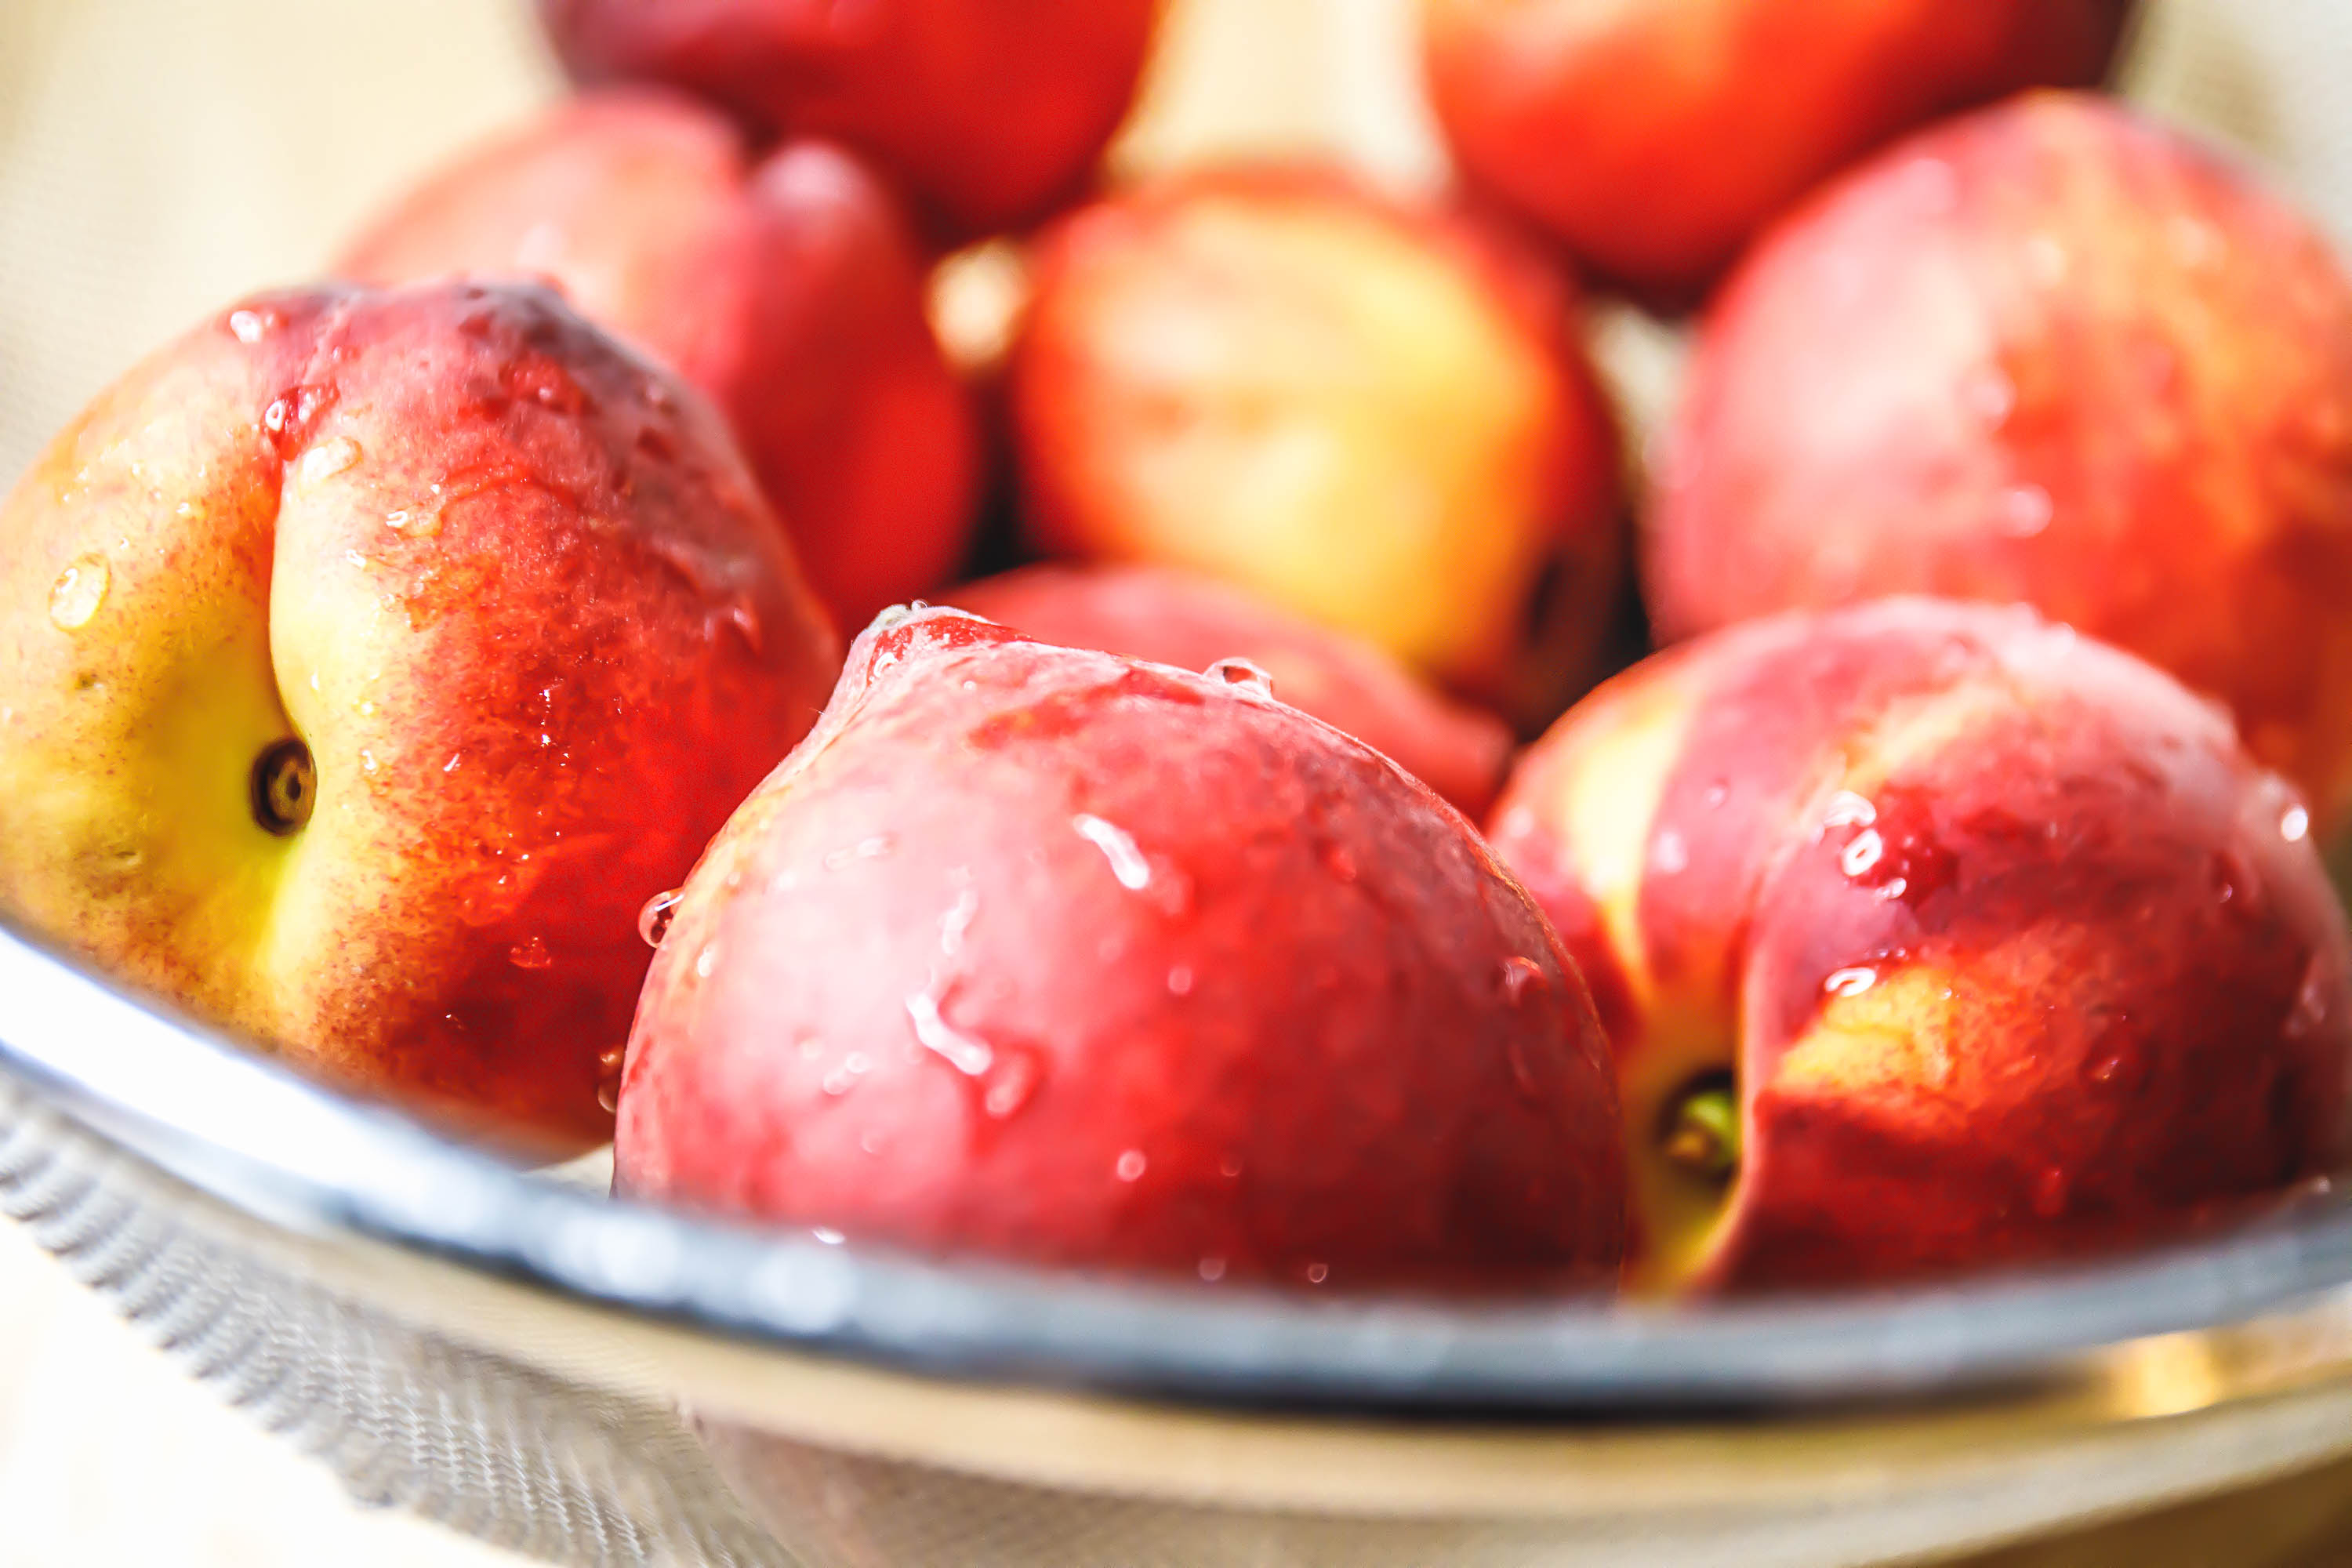 Peaches, plums, or other seasonal summer fruits work in this recipe